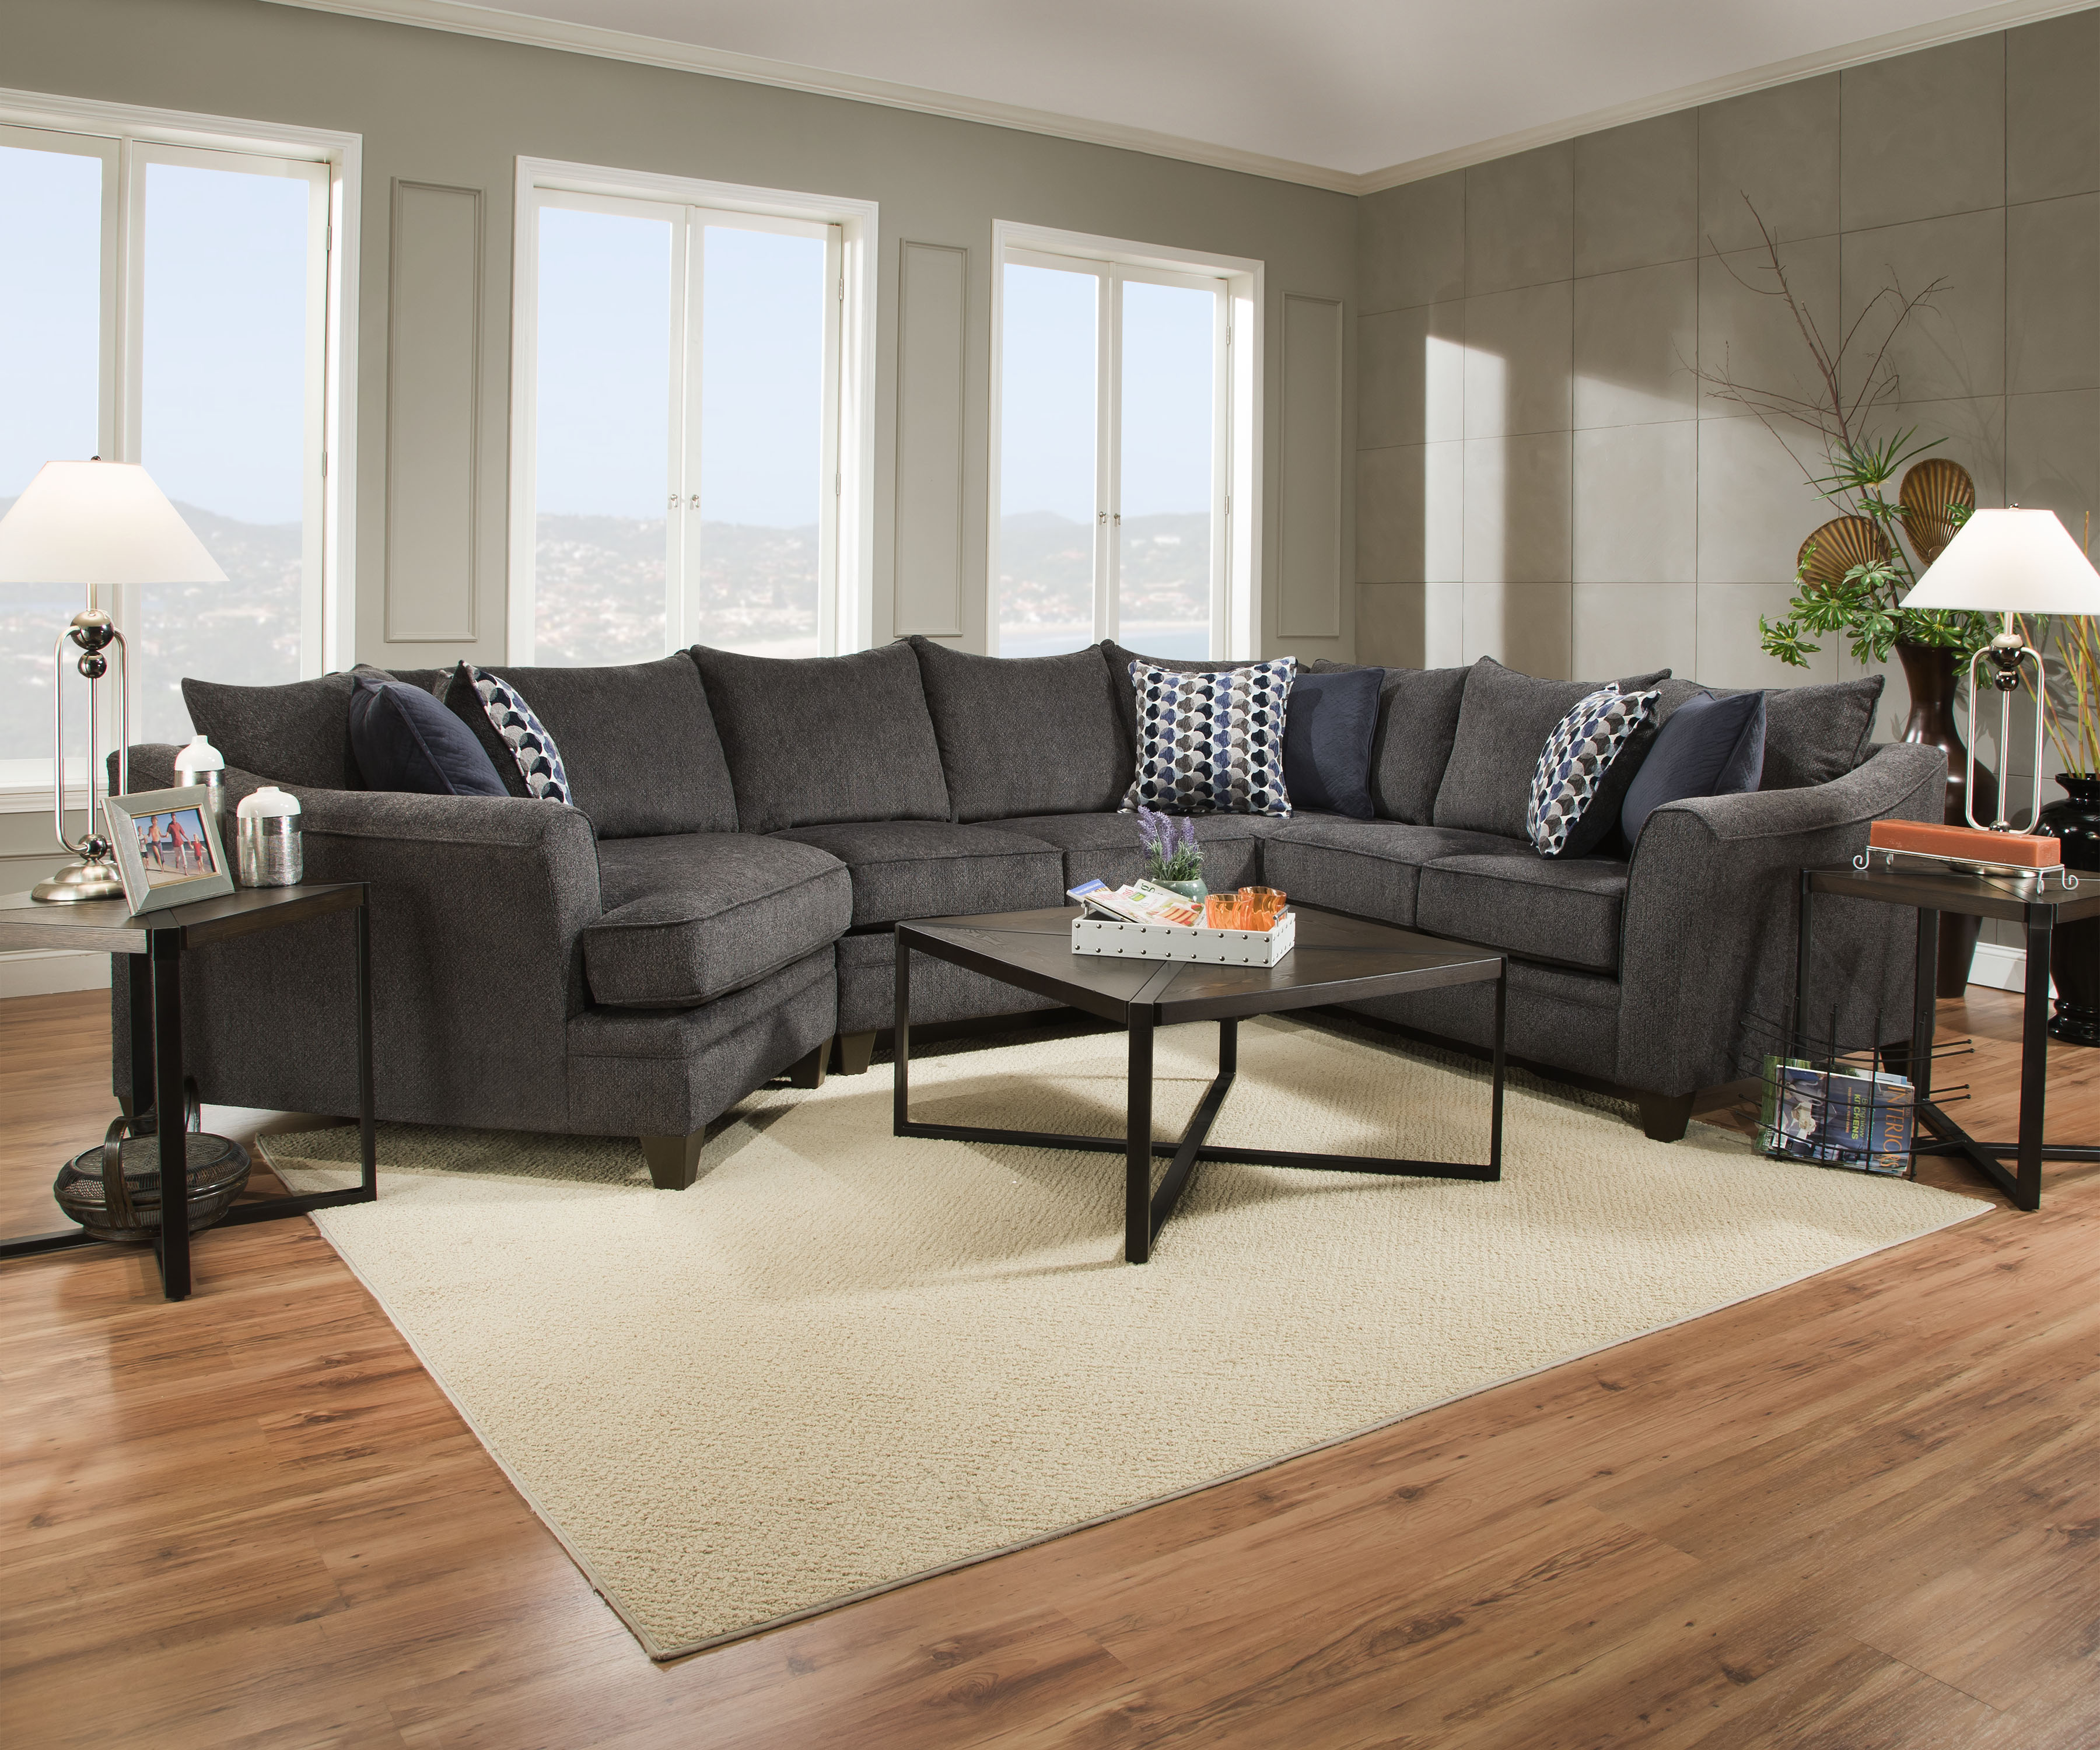 grey sectional sofa ideas pottery barn slipcovered knockoff simmons madelyn laf end wedge - albany slate